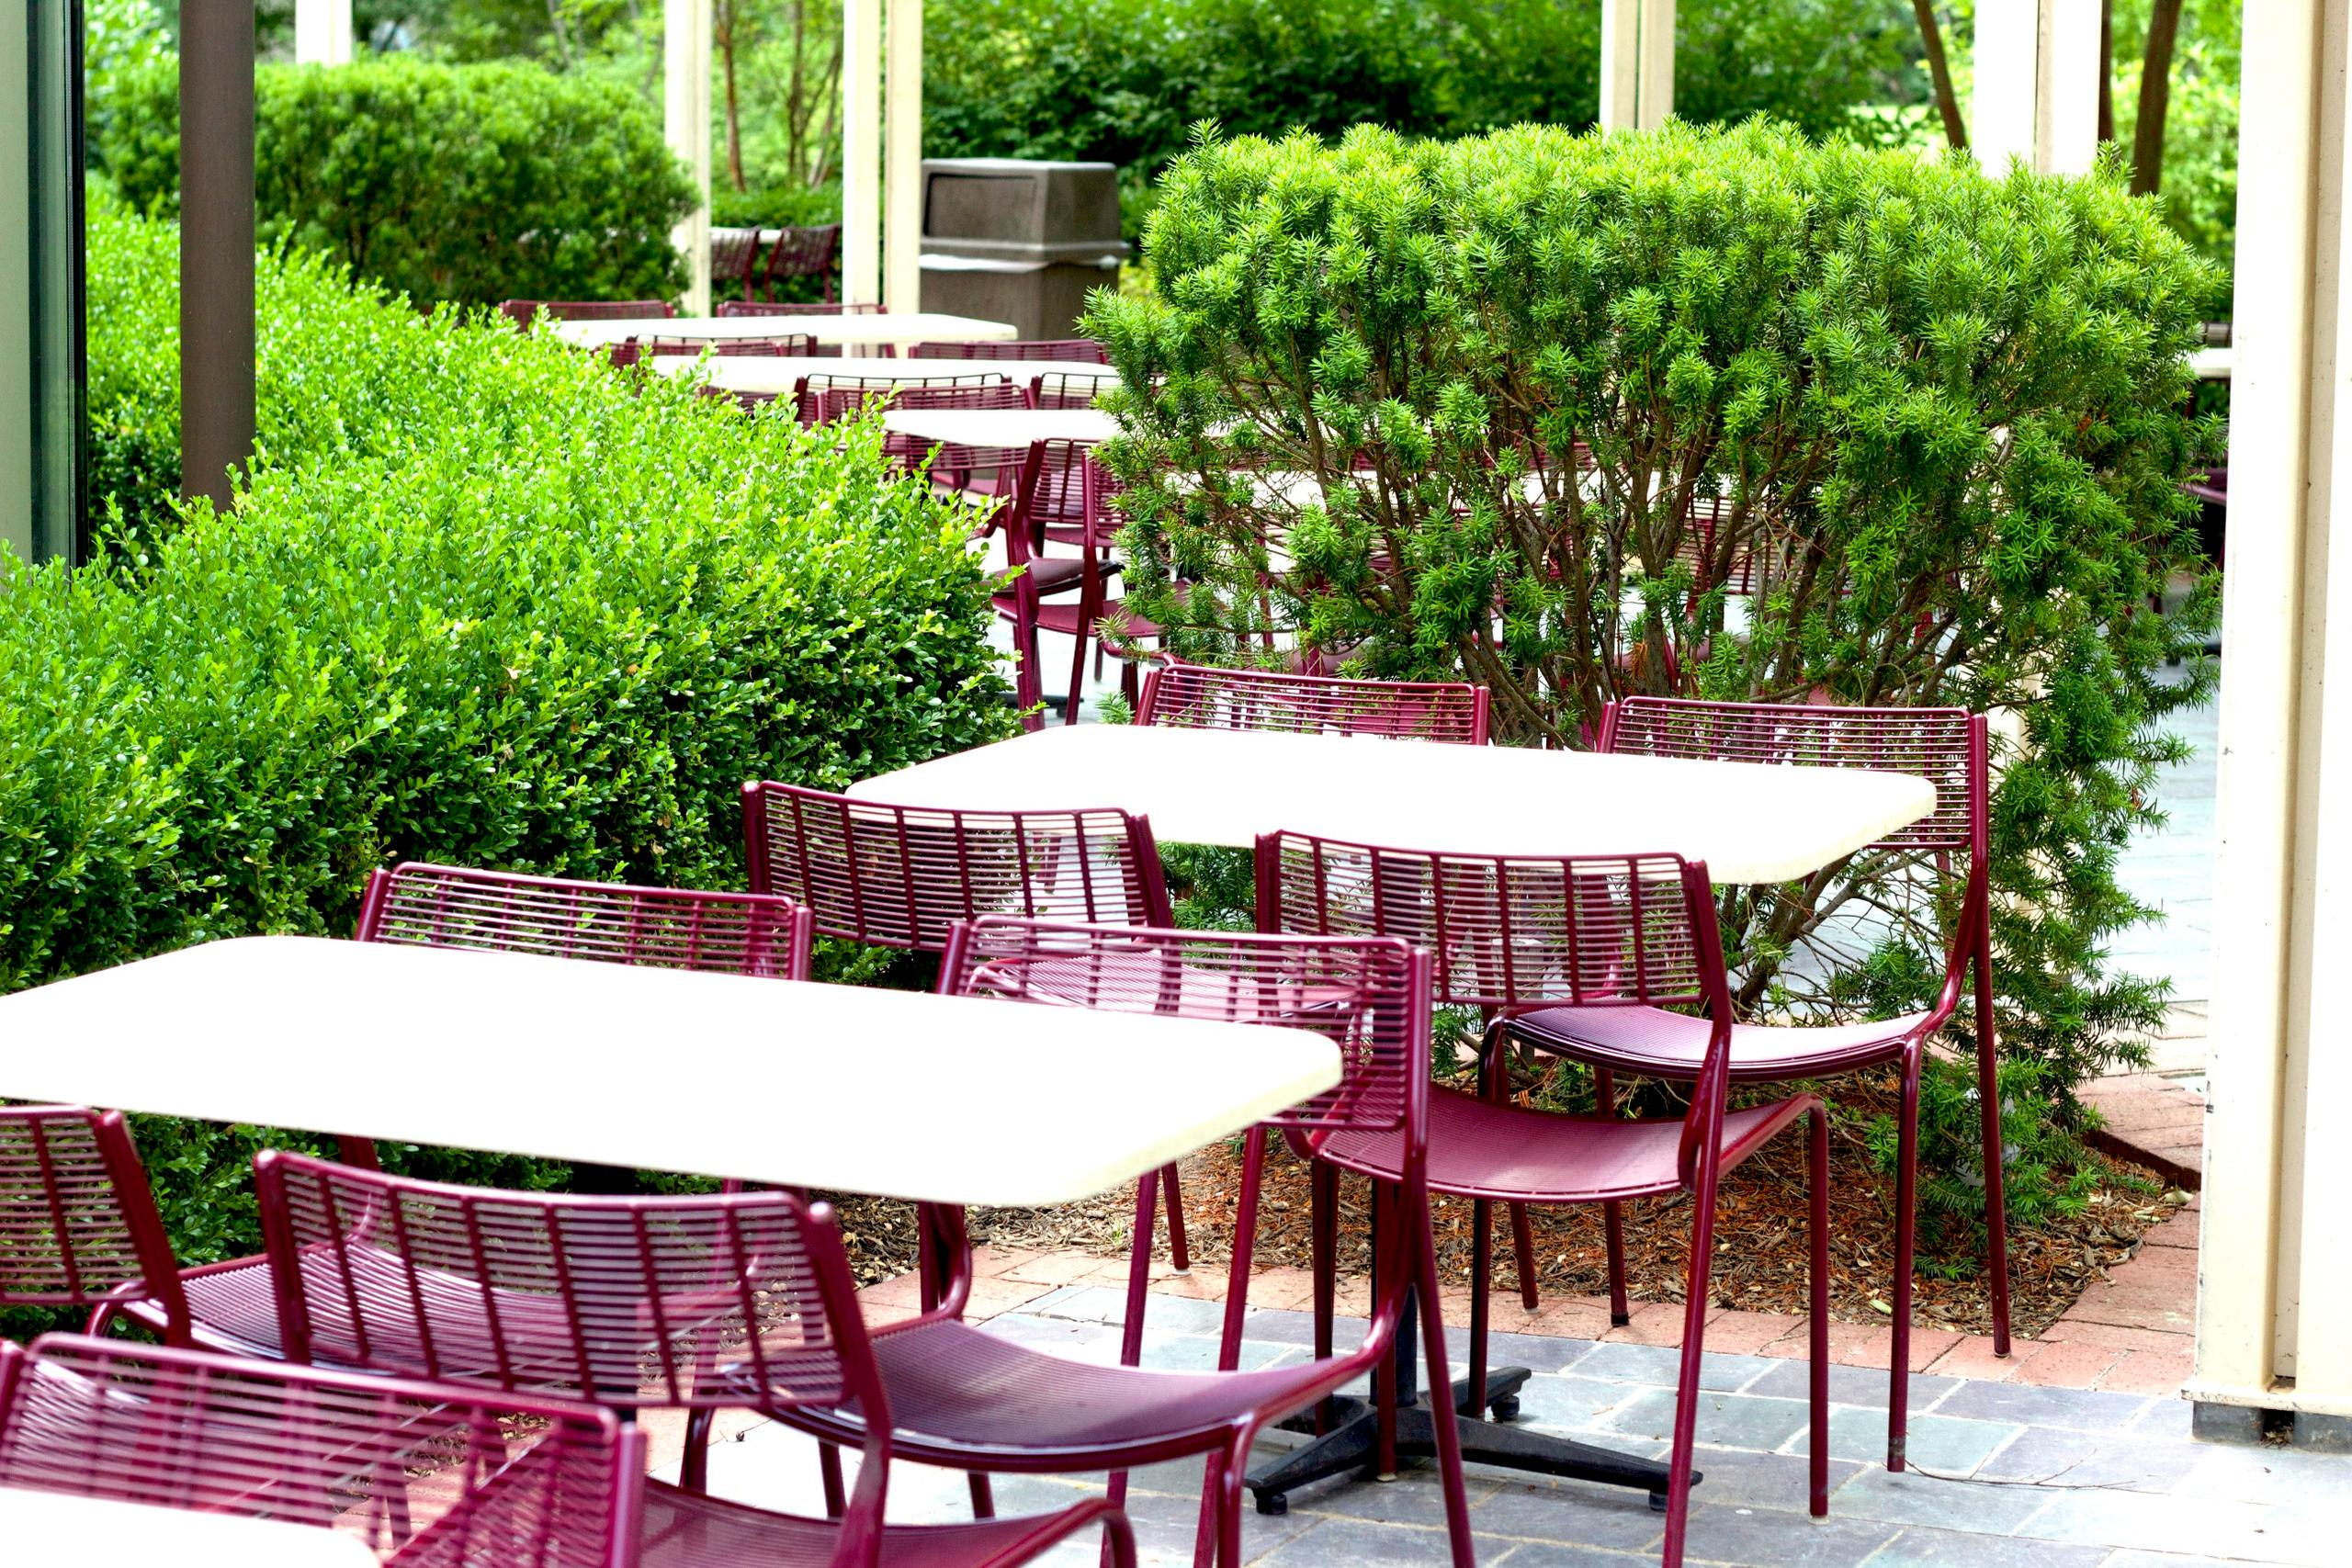 Dine with us out in our peaceful outdoor terrace or in our air conditioned pavilion.